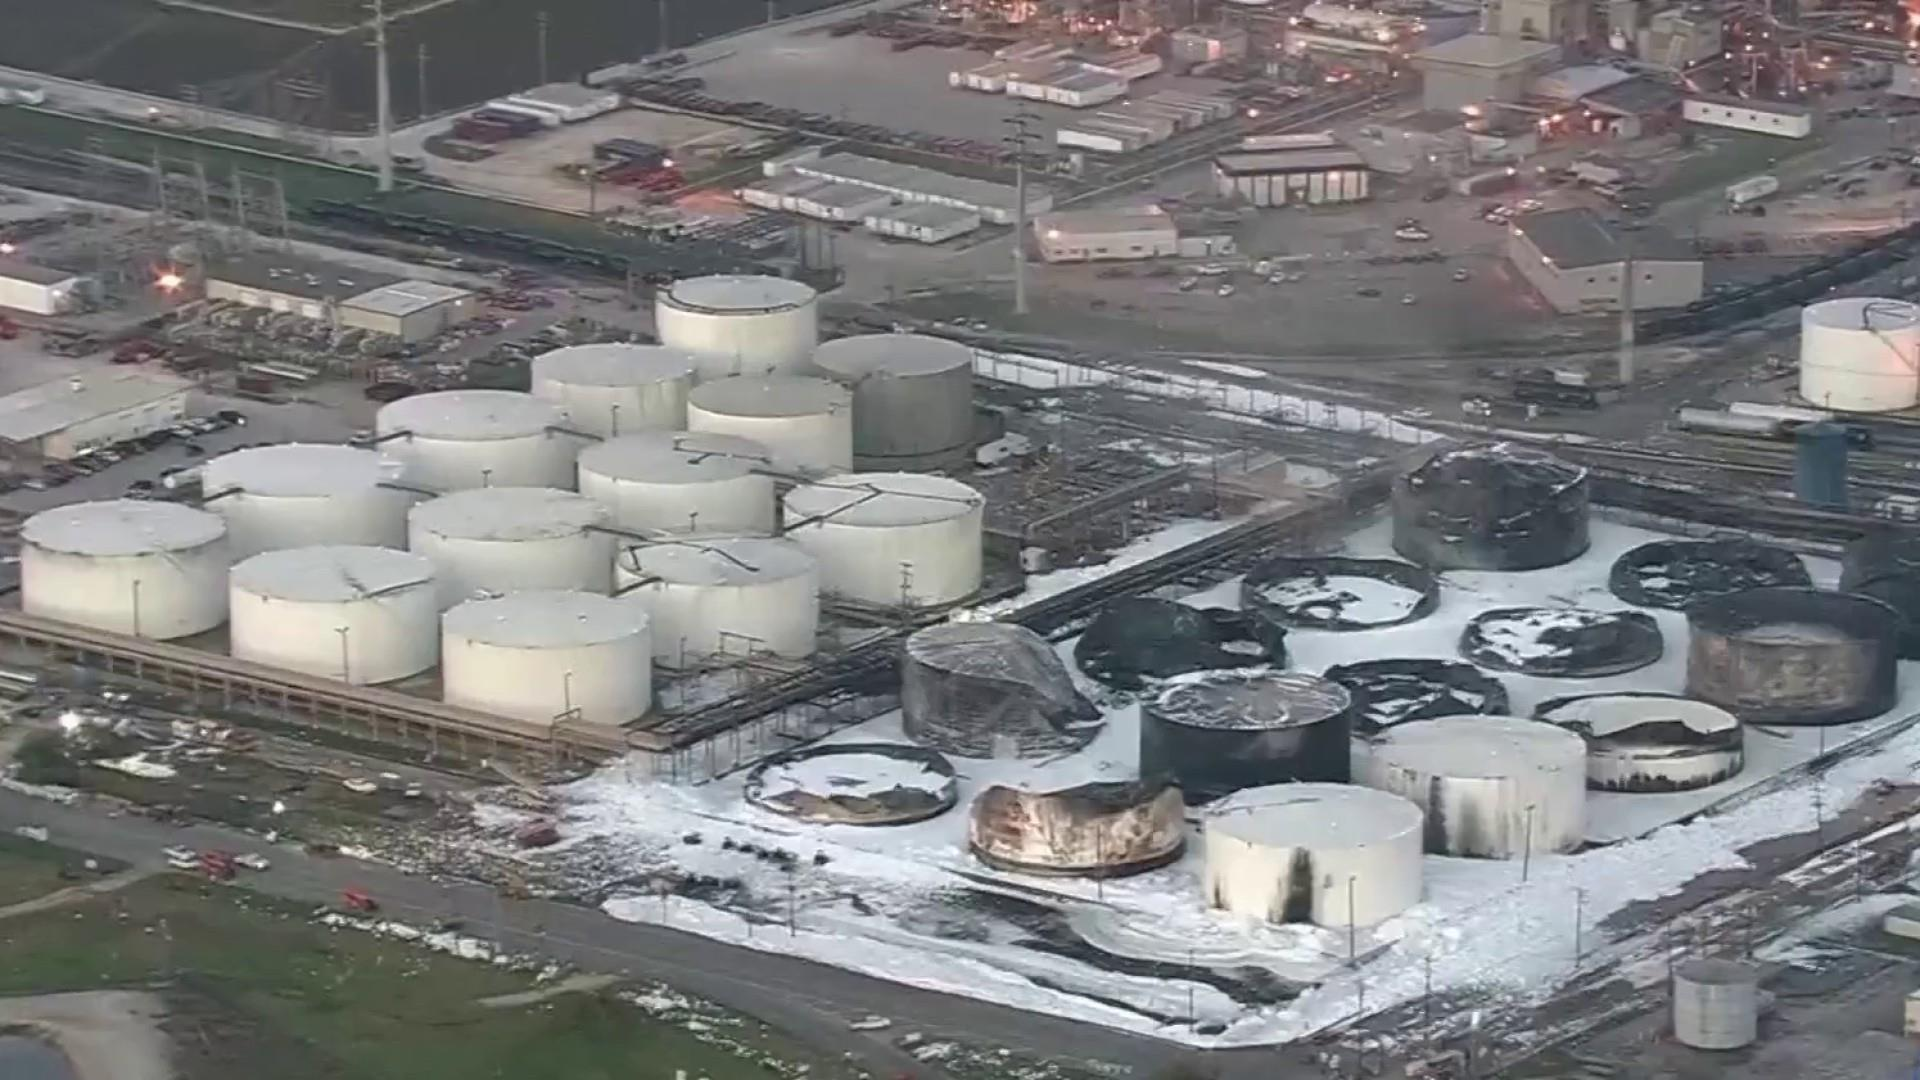 Residents demand answers over Texas chemical fire health concerns